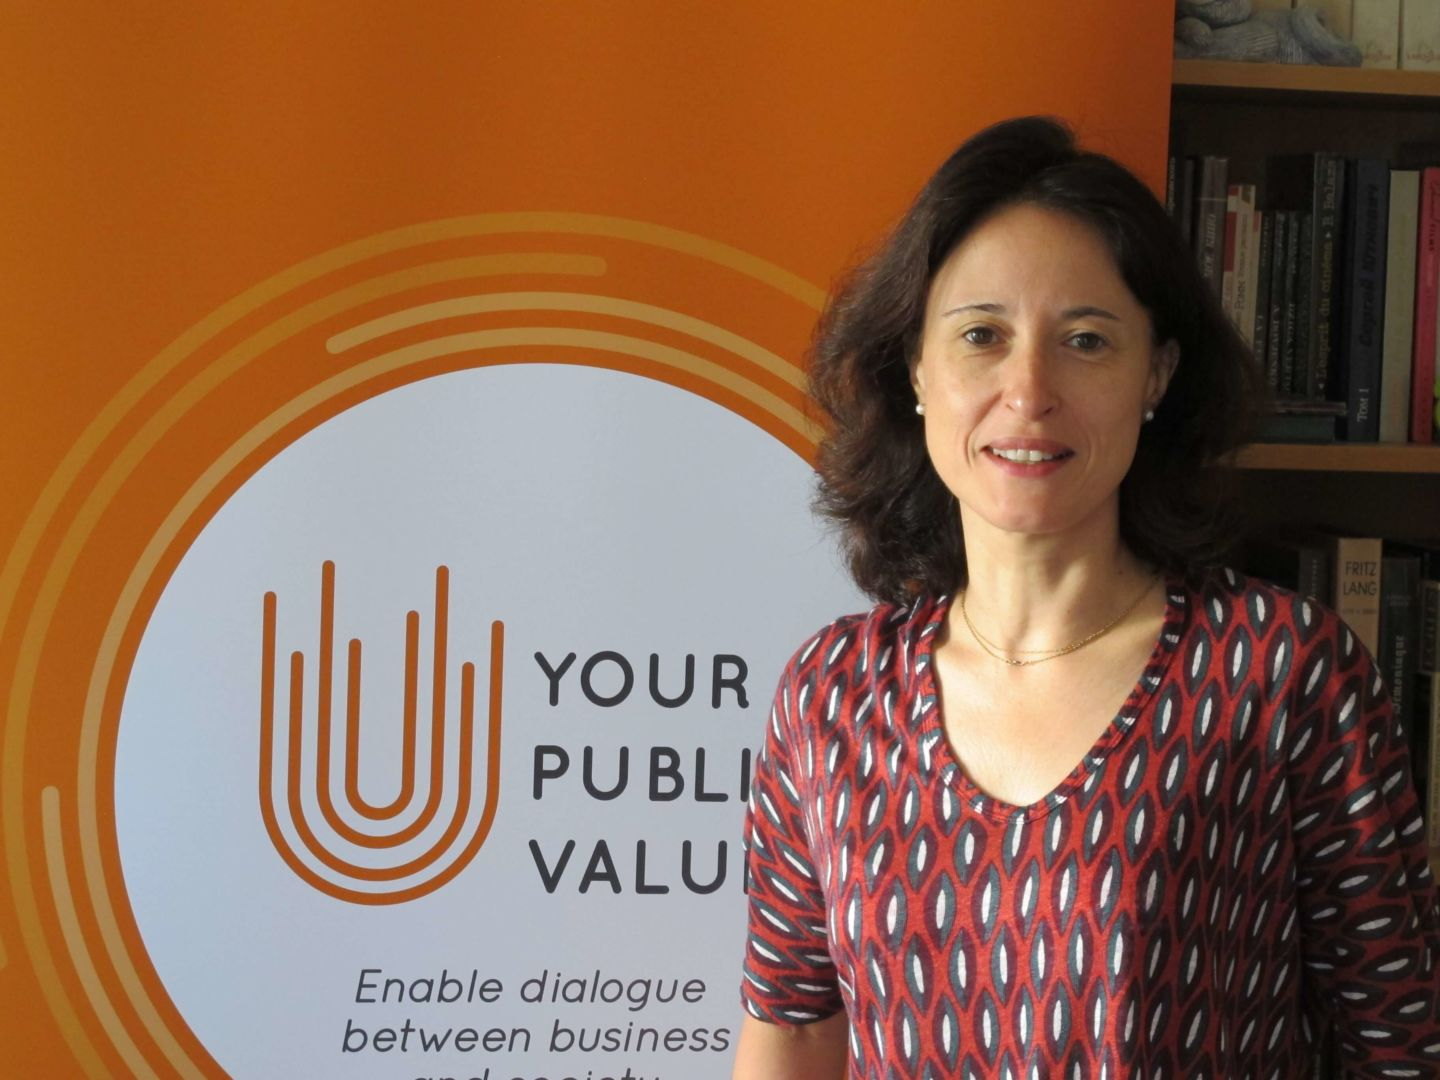 PUBLIC VALUE KEY TO SUCCESSFUL BUSINESS